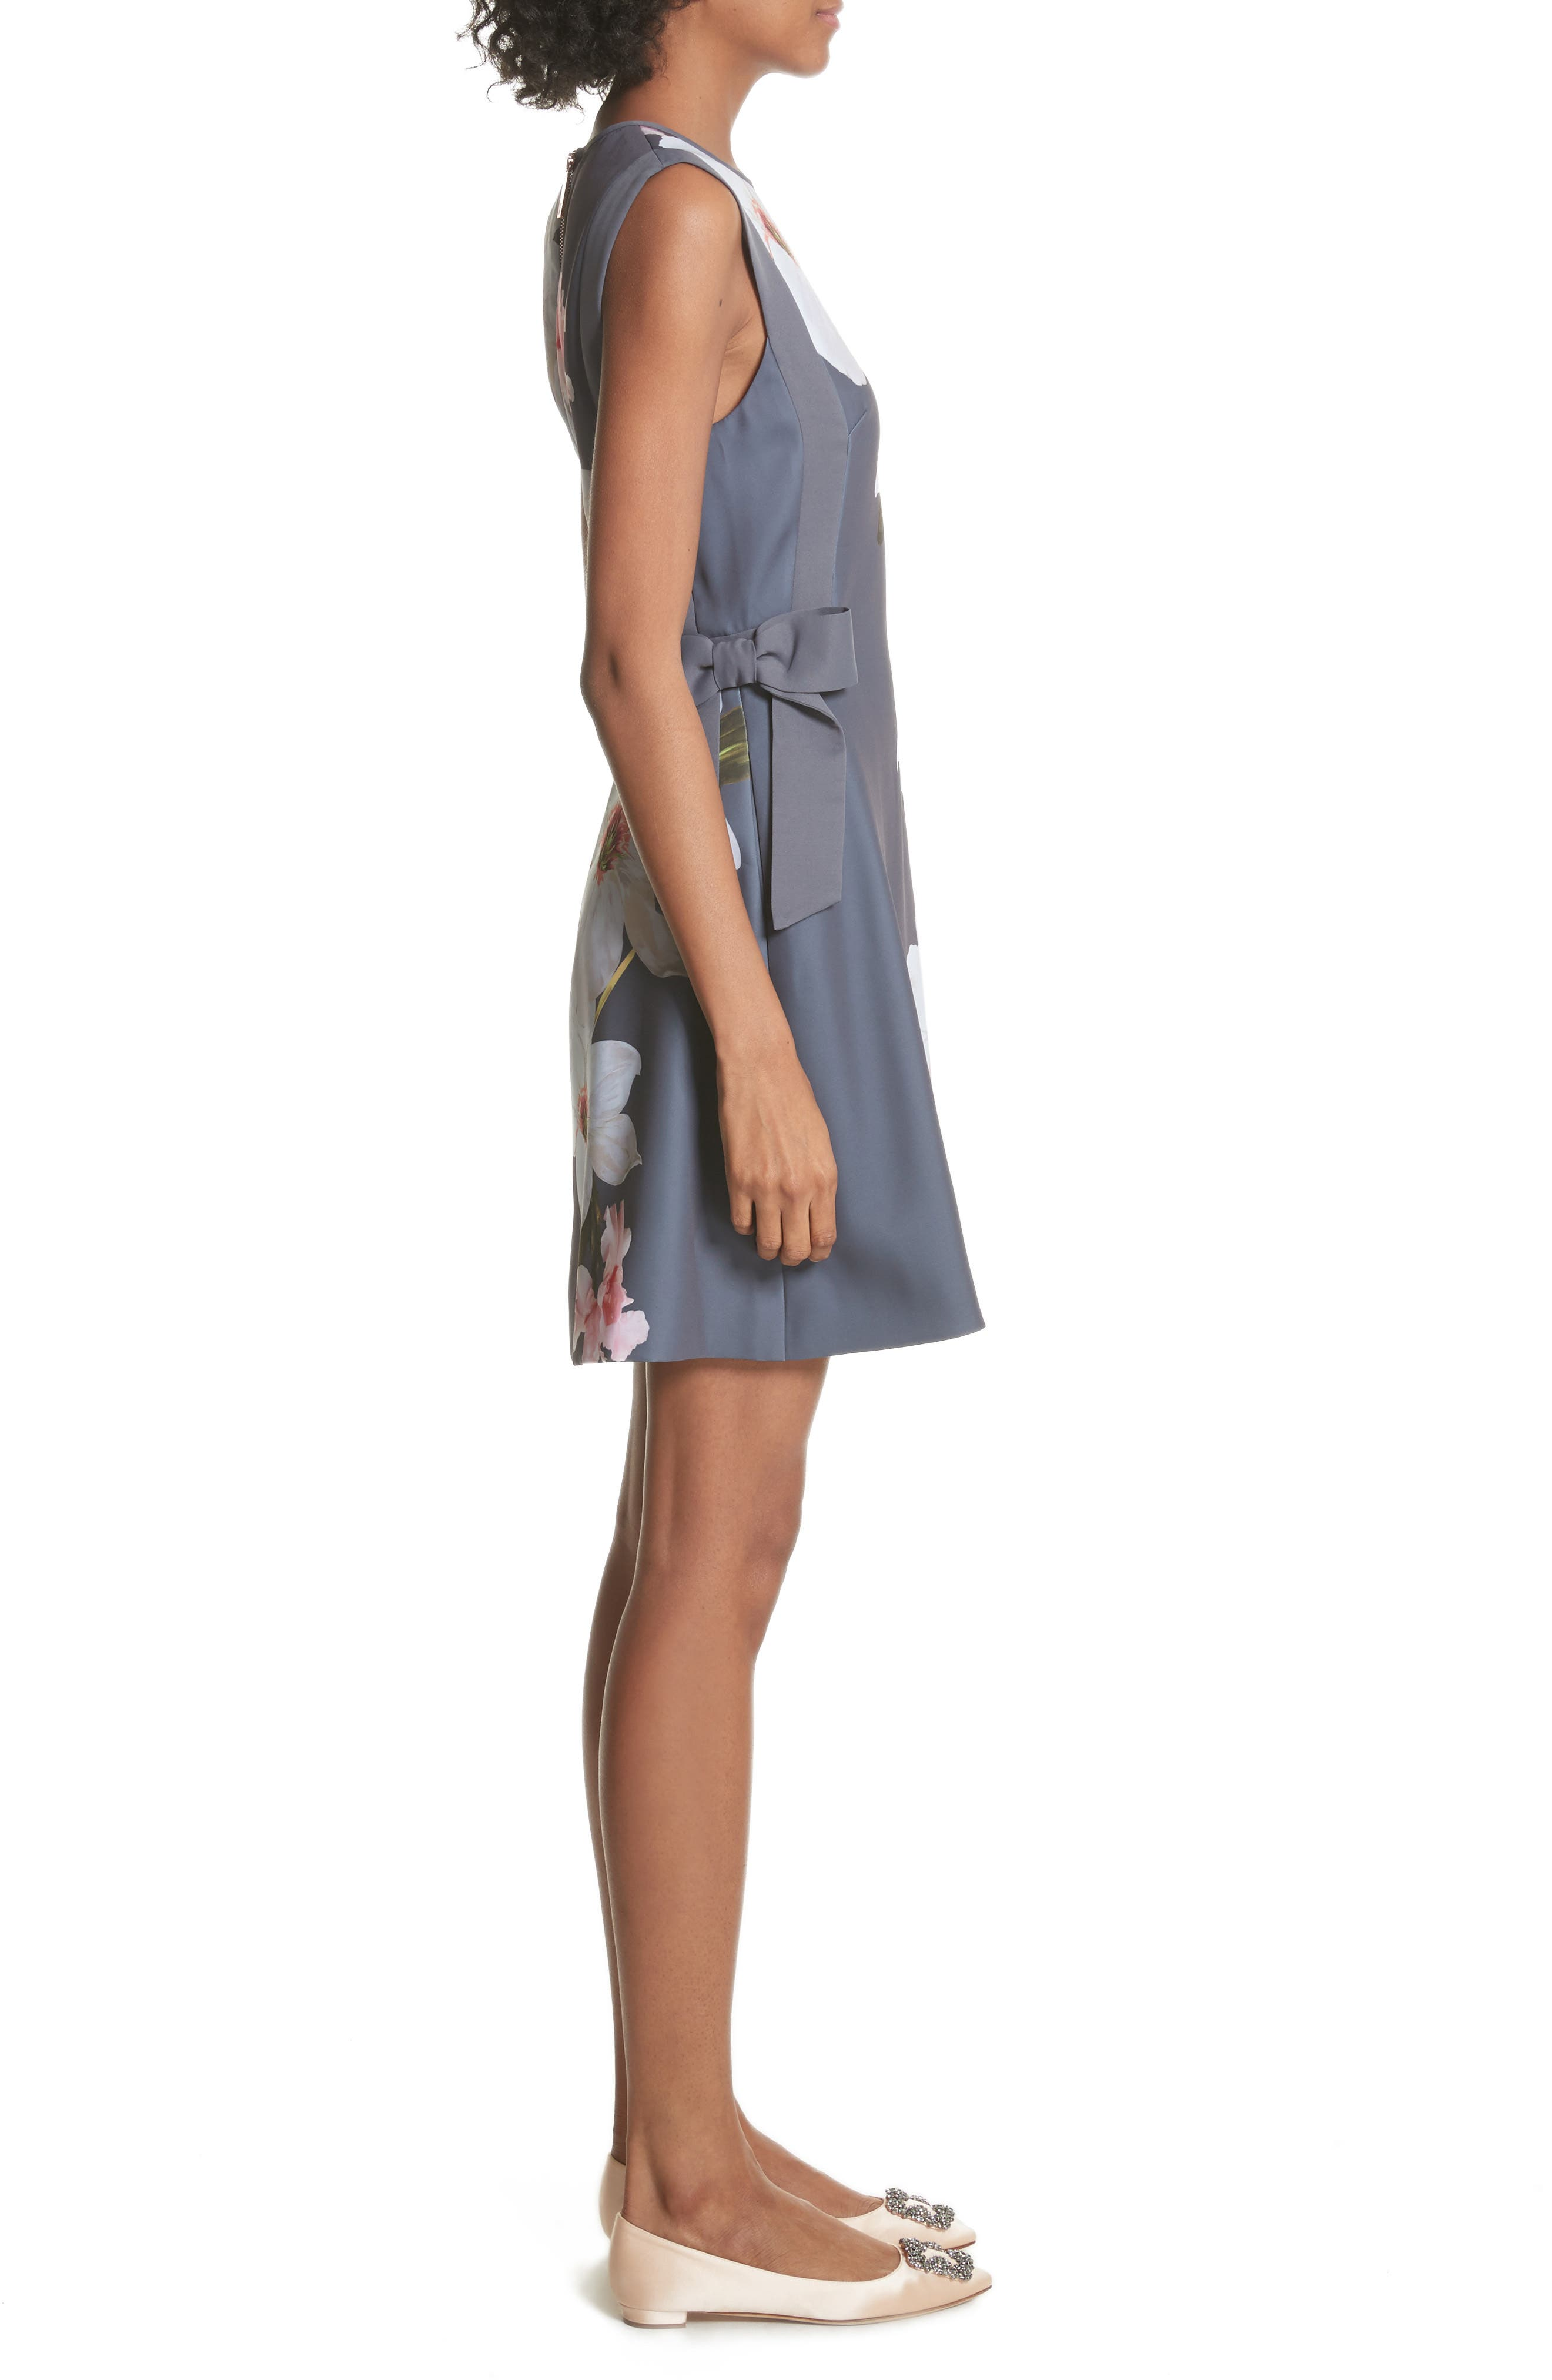 Chatsworrth A-Line Dress,                             Alternate thumbnail 3, color,                             Grey